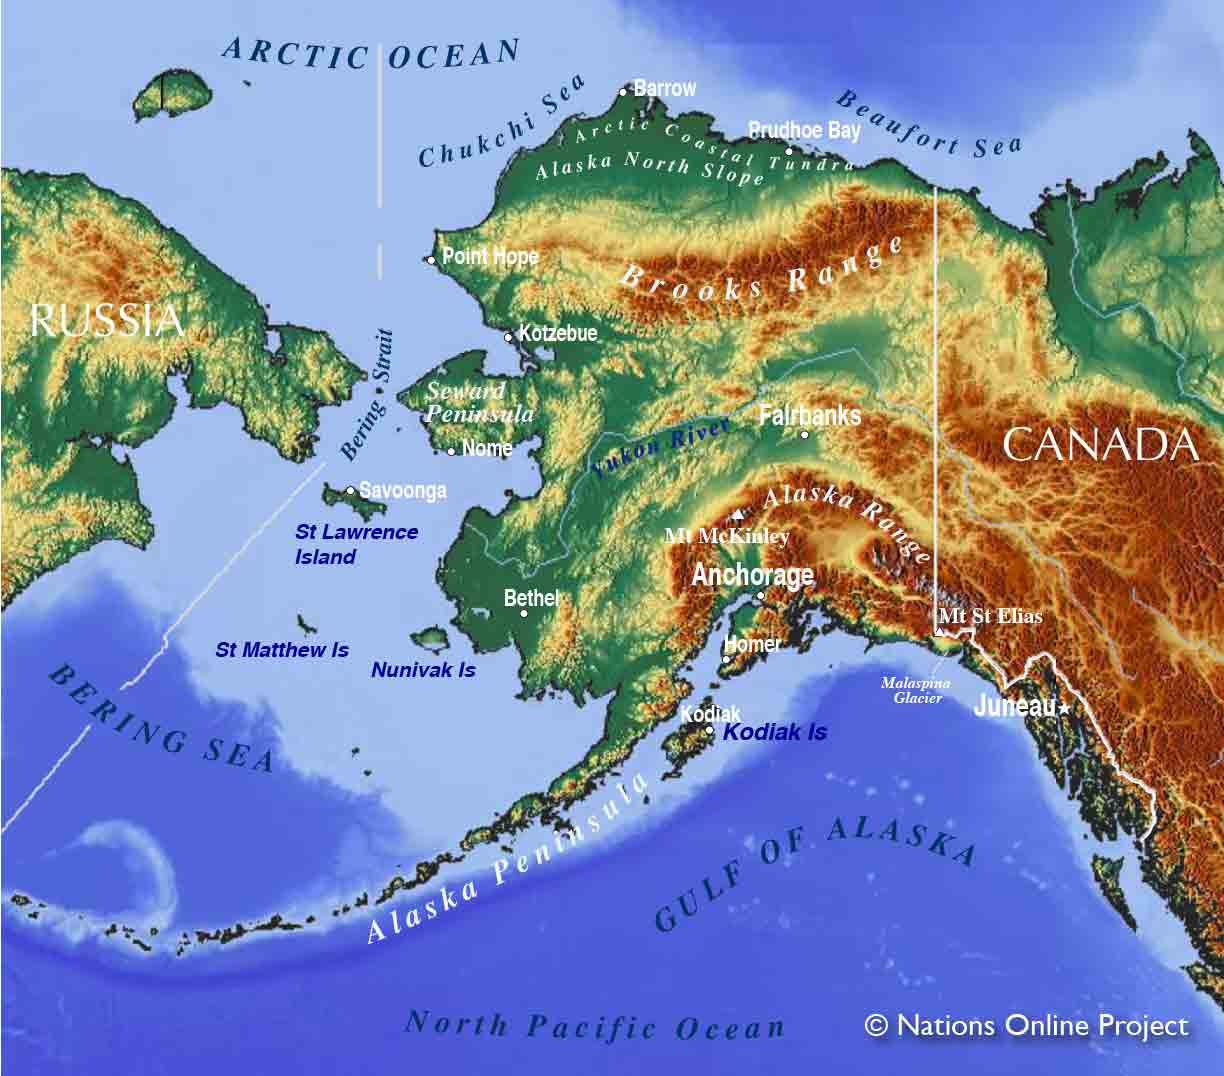 Map of Alaska State, USA - Nations Online Project Show Me A Map Of Alaska on show me a usa map, current time in alaska, show map of spain, show alaska on a map, document purchase of alaska, show map of mexico, alagnak river alaska, world map alaska, show about living in alaska, show map of united states, exact location of alaska, state cities in alaska, lumberjack show ketchikan alaska, weather in sitka alaska, map from texas to alaska, fort seward haines alaska, show me the map, location of juneau alaska, chikuminuk lake alaska,